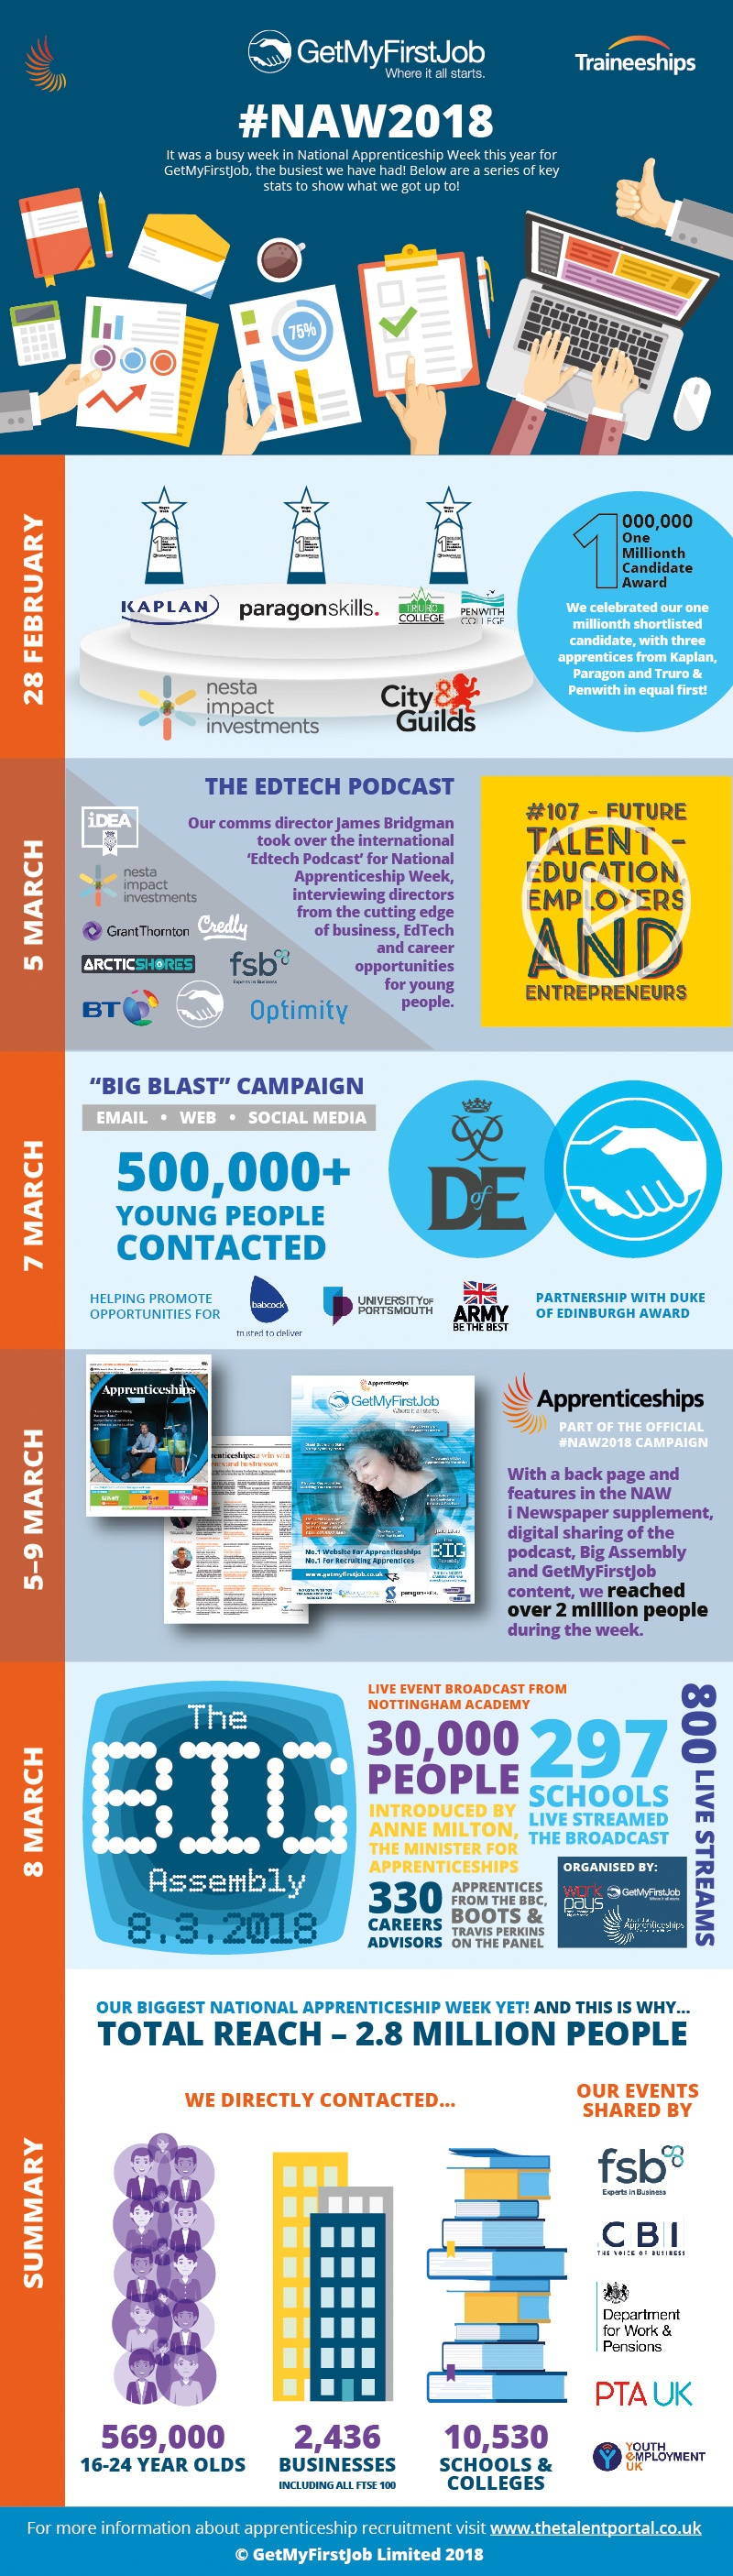 NAW2018 Infographic